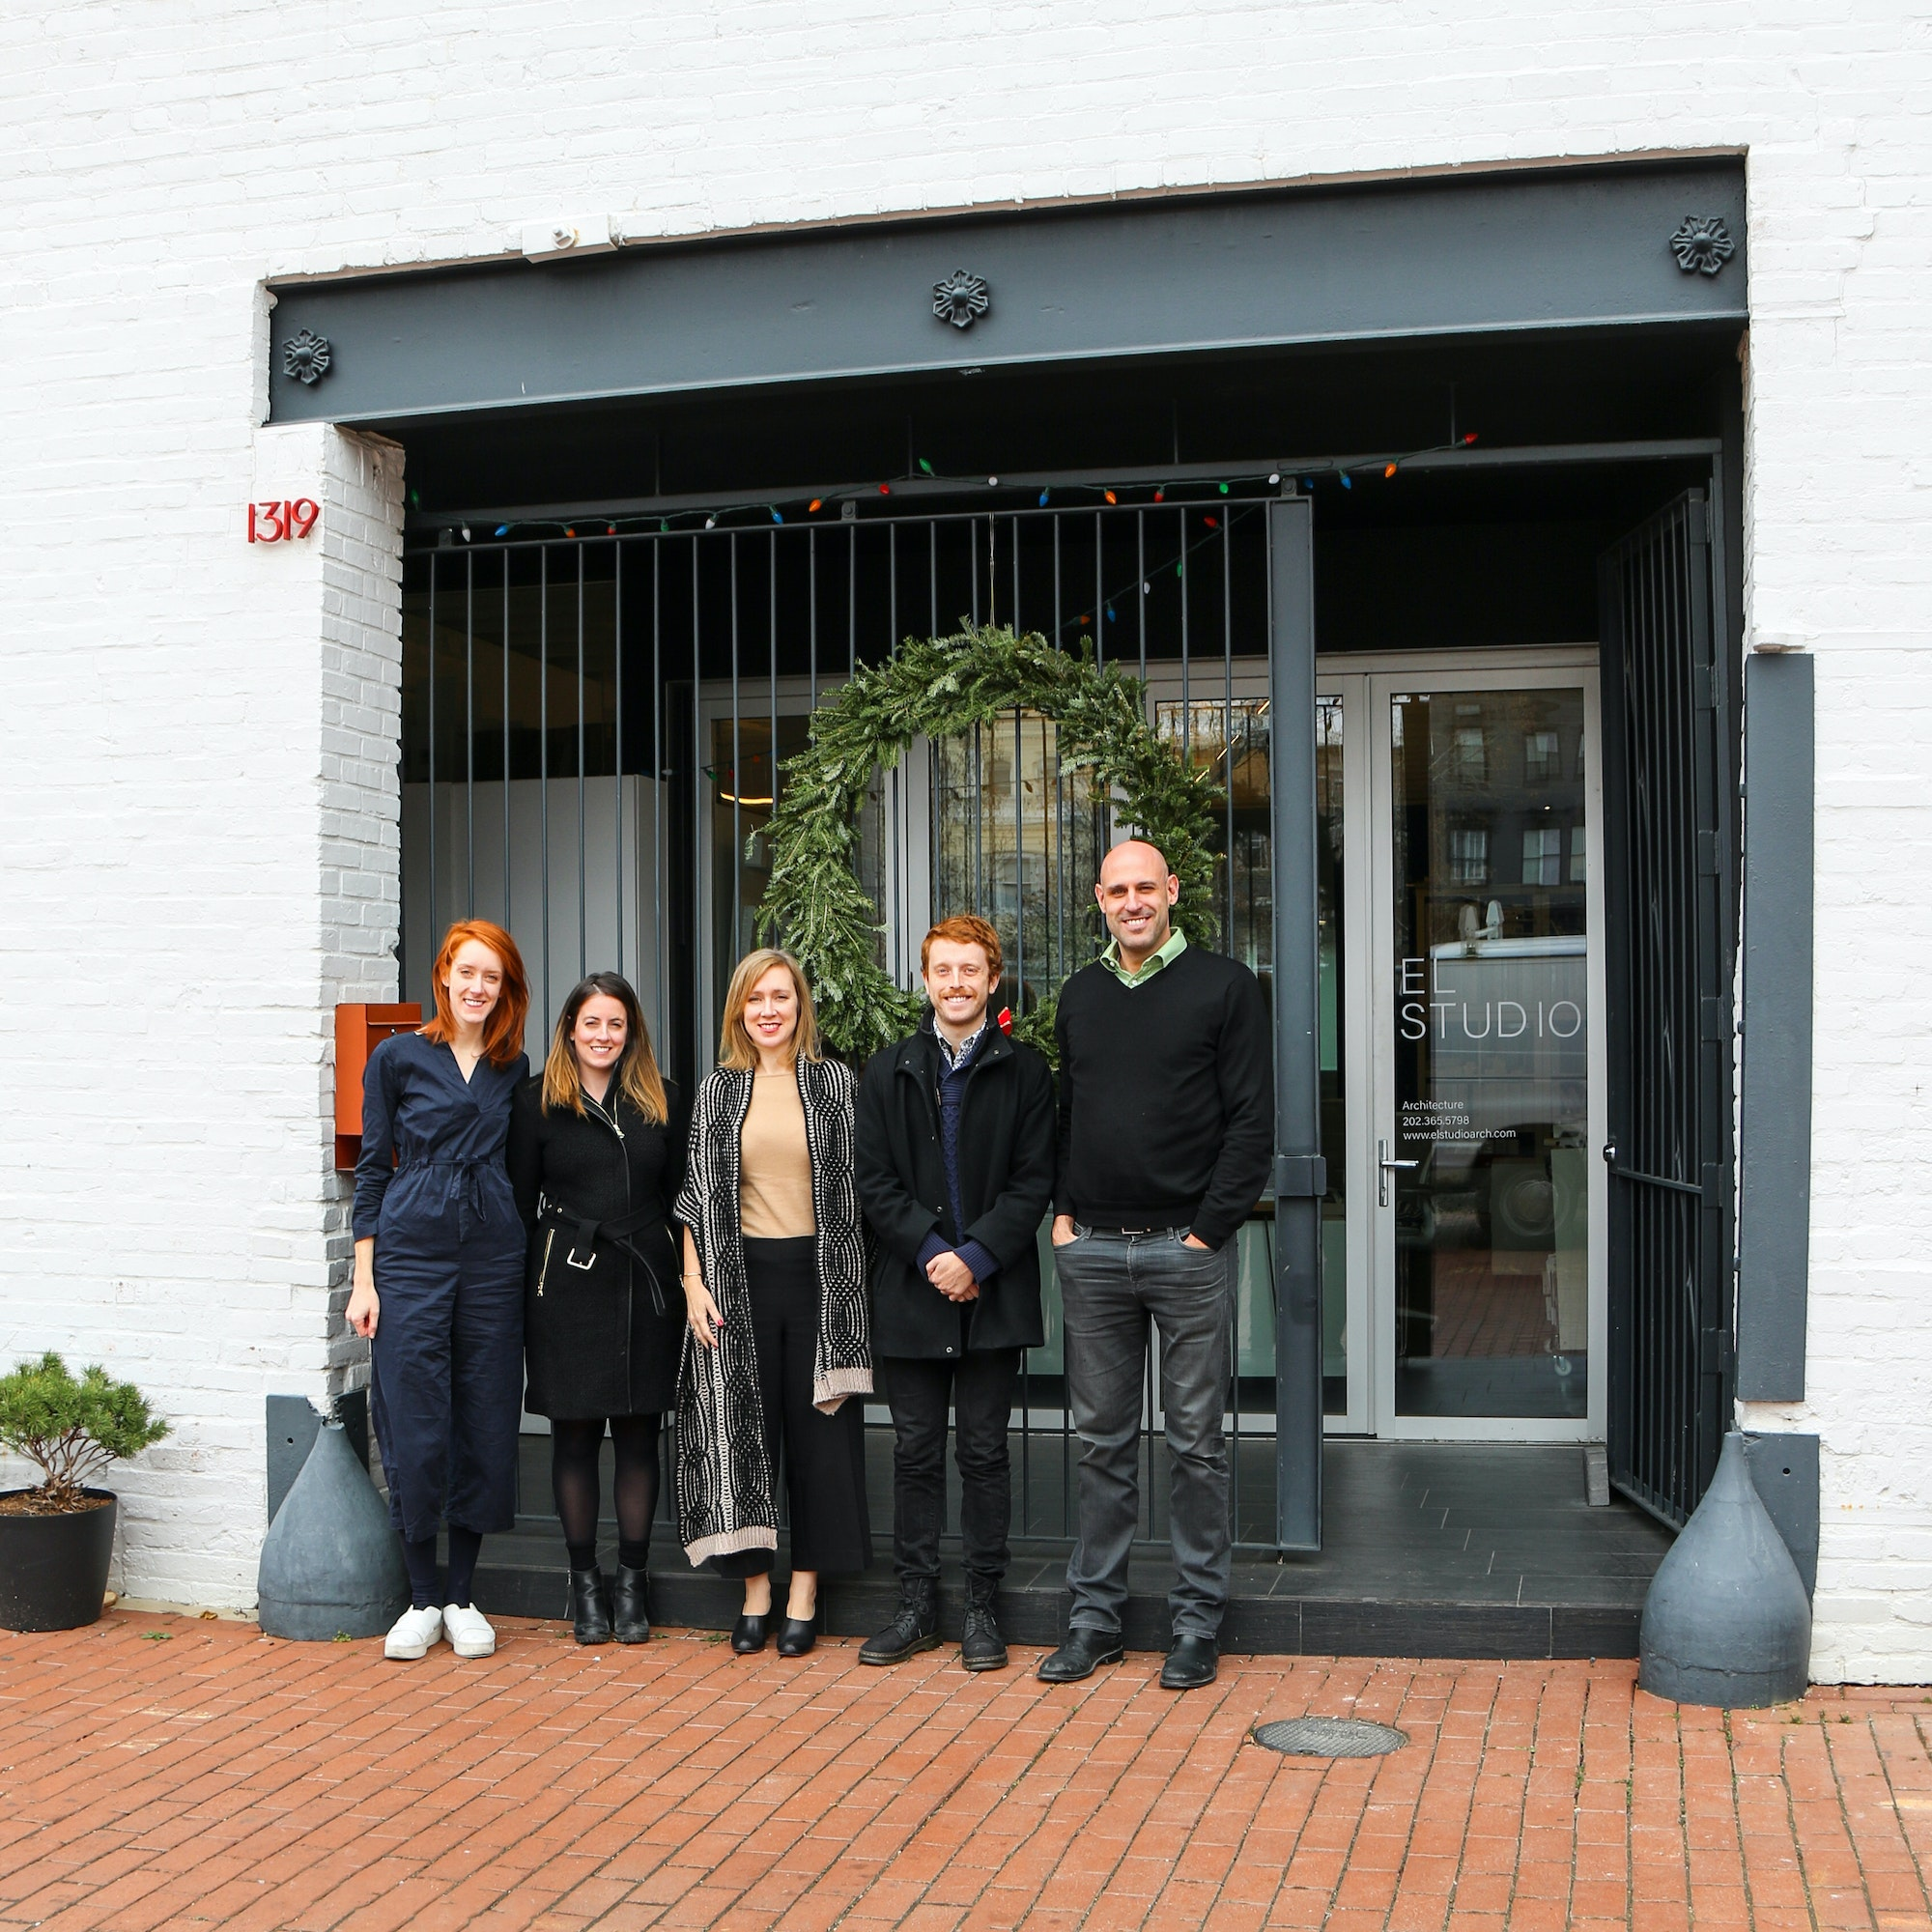 EL Studio, A Practice Based Partially Out Of Washington D.C, Is Located In  A Former Horse Stable That Has Been Converted Into A Live/work Space By ...